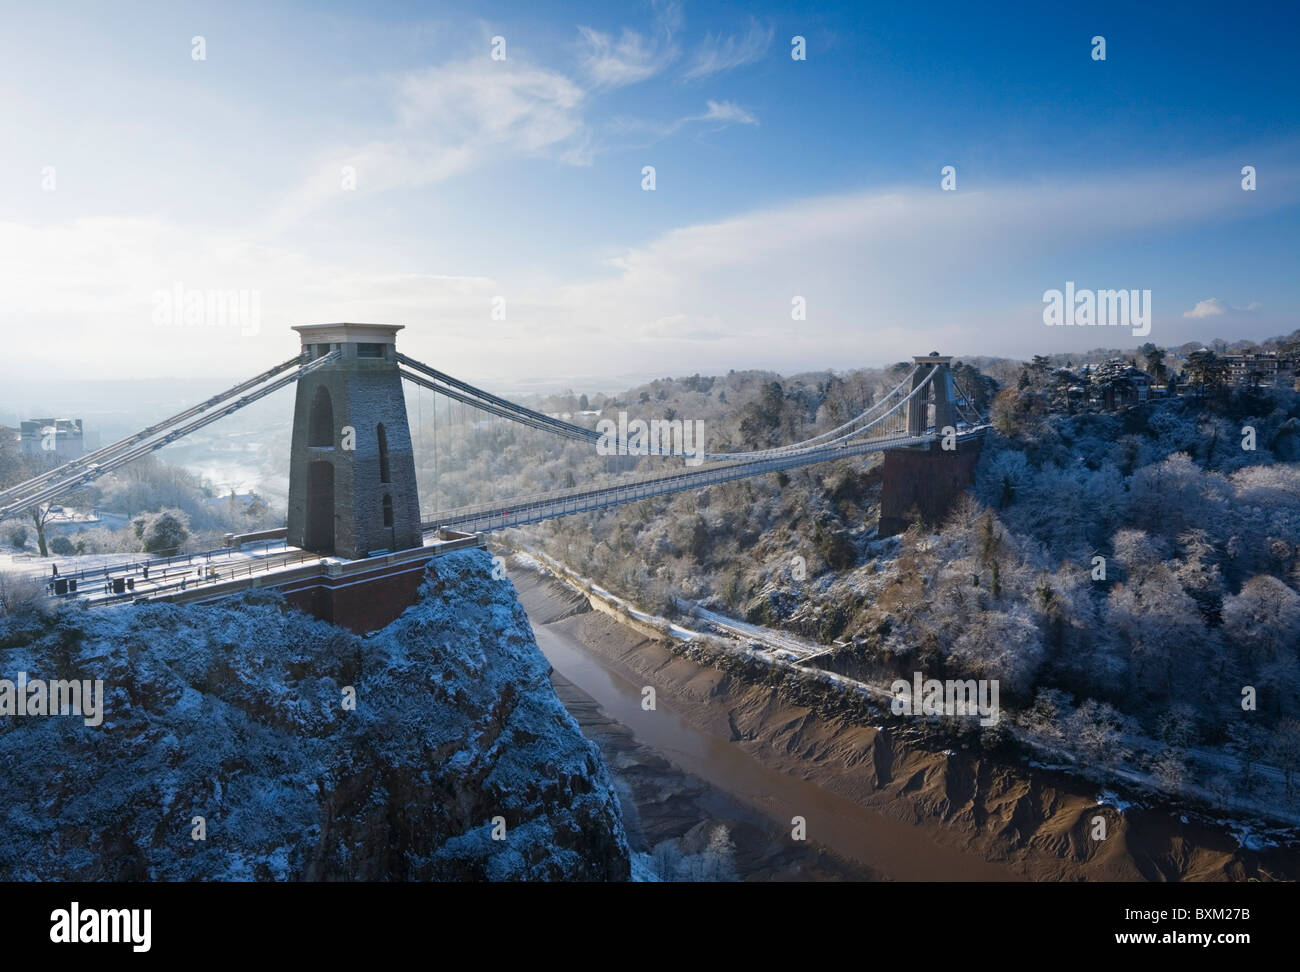 Clifton Suspension Bridge, Winter. Bristol. England. VEREINIGTES KÖNIGREICH. Stockbild